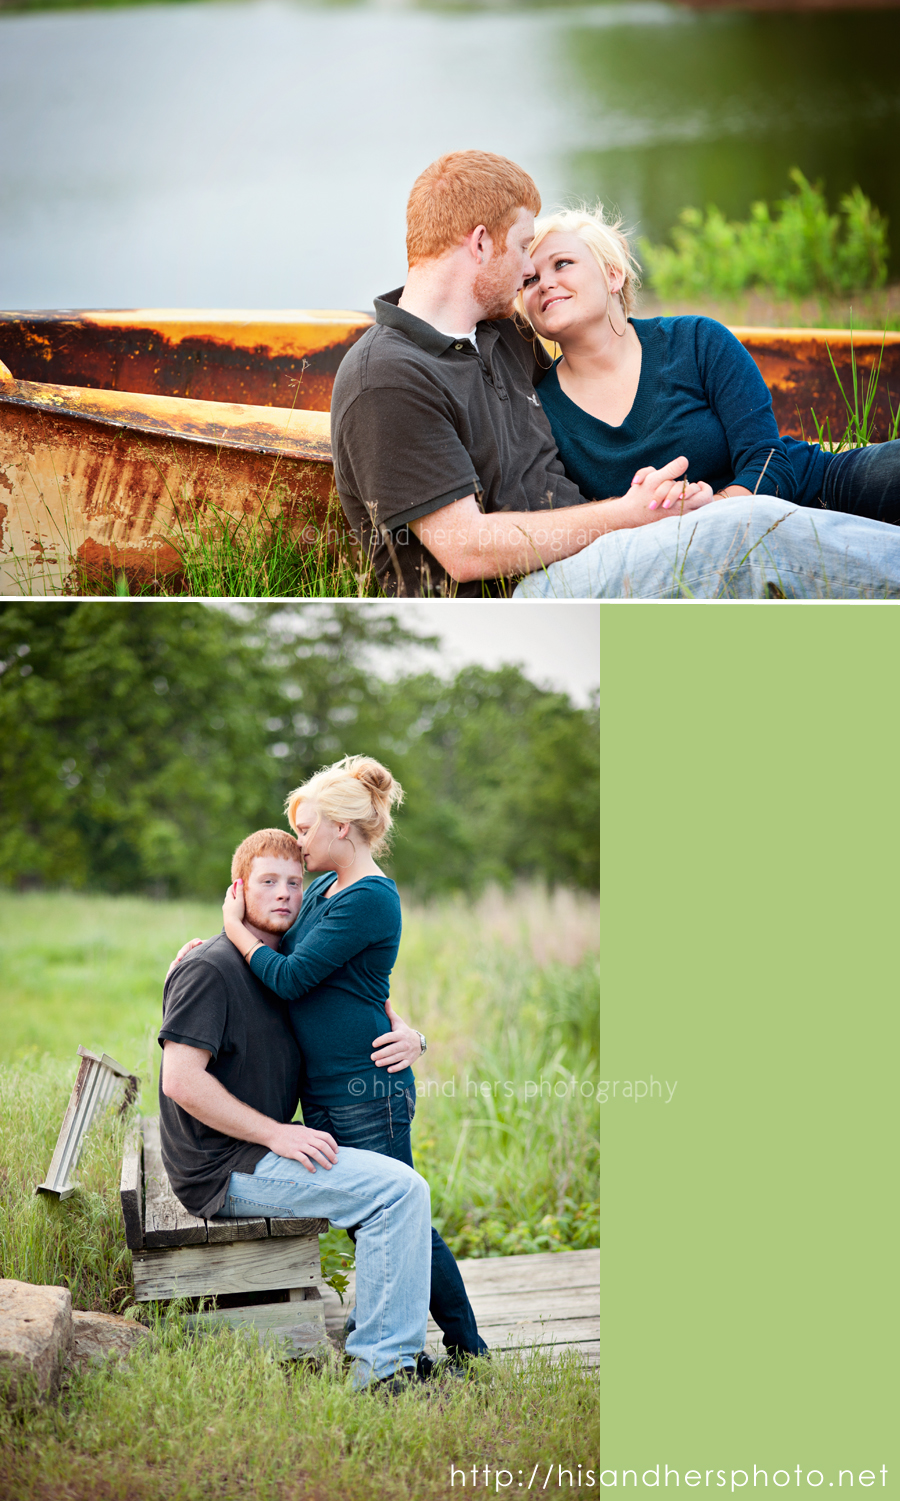 Carli + Jake, Engaged | Des Moines, Iowa Engagement Pictures Photographer